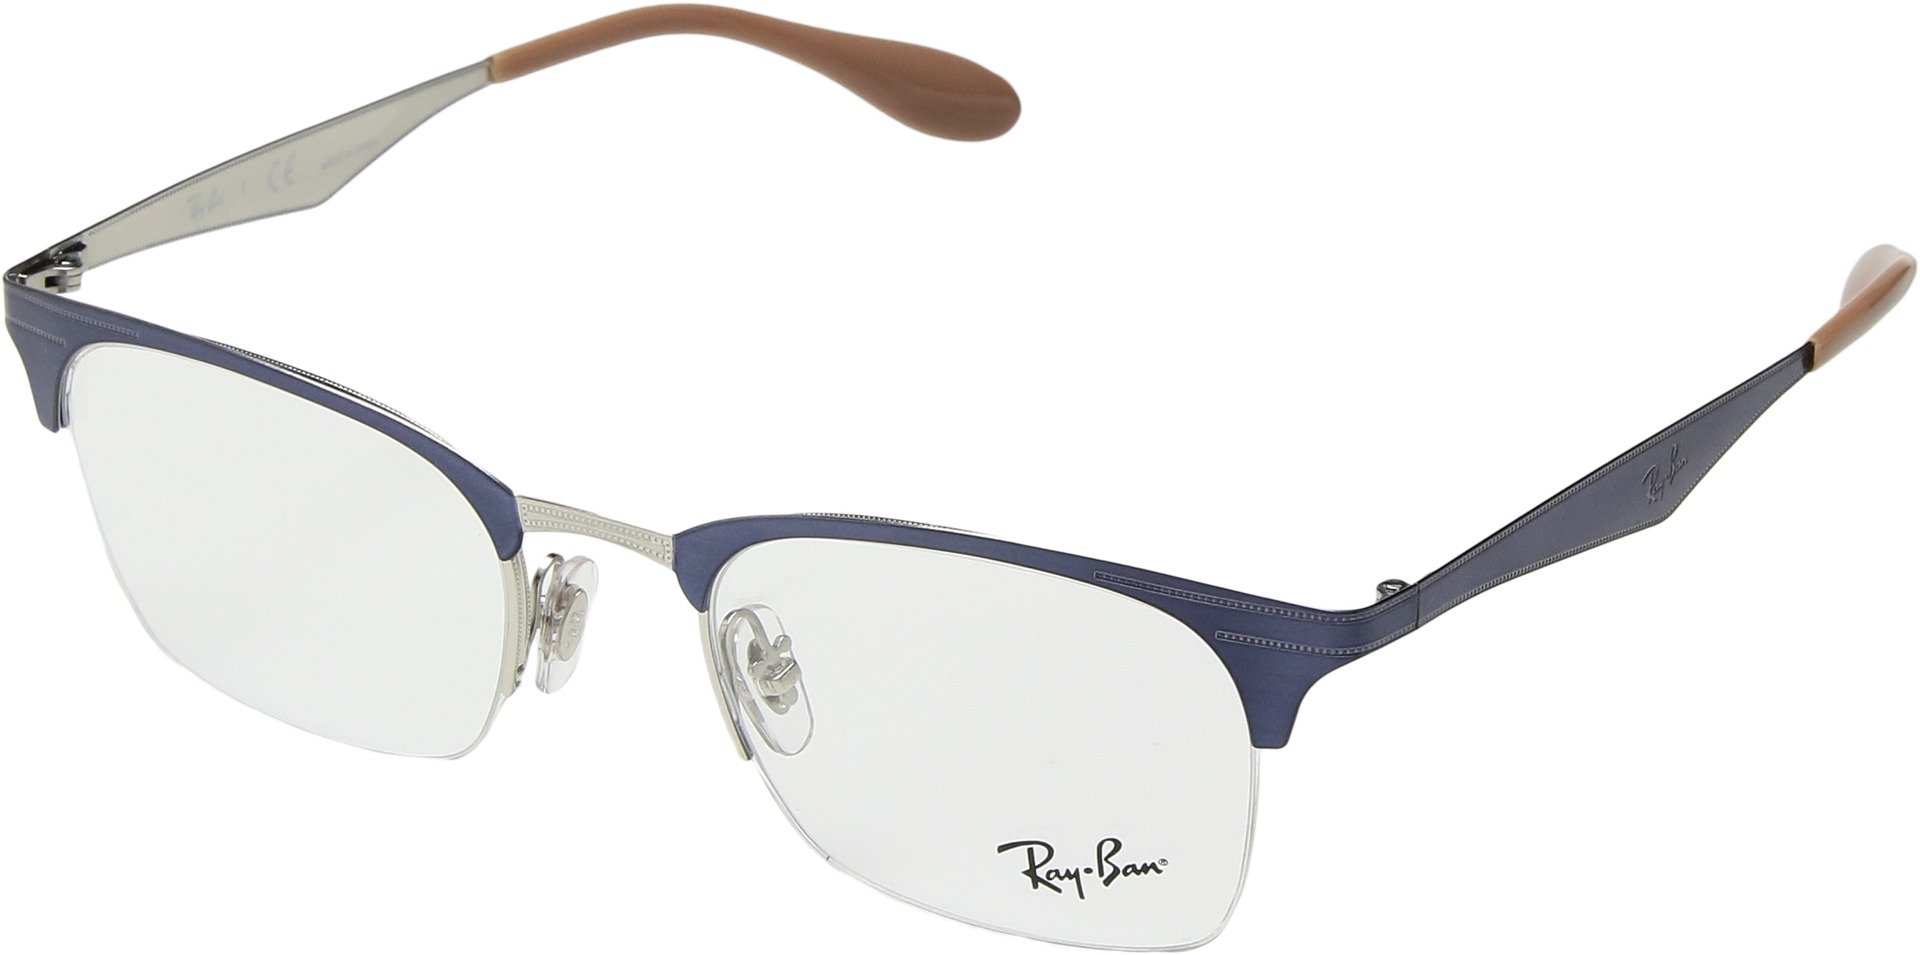 Ray-Ban Unisex 0RX6360 49mm Silver/Violet One Size